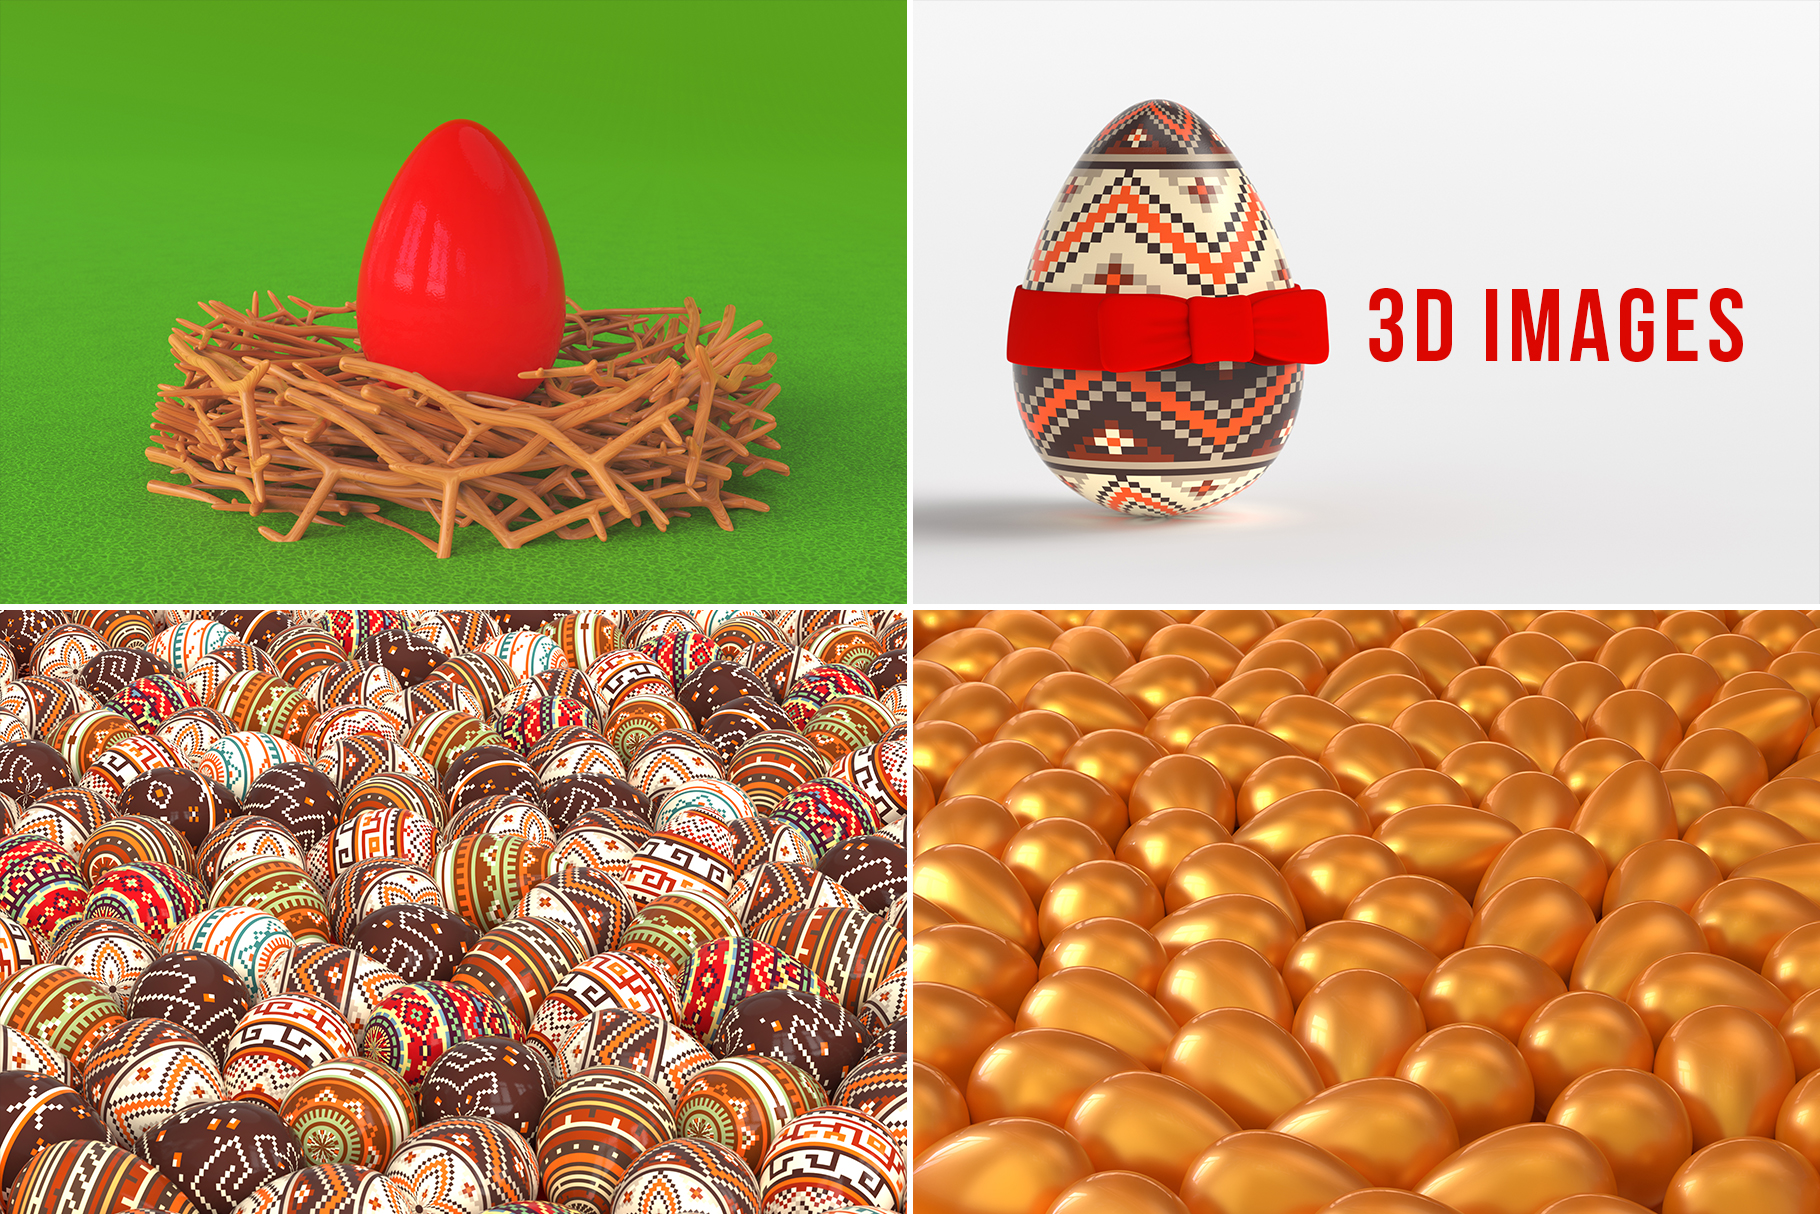 Easter Egg Mockups and Images example image 18